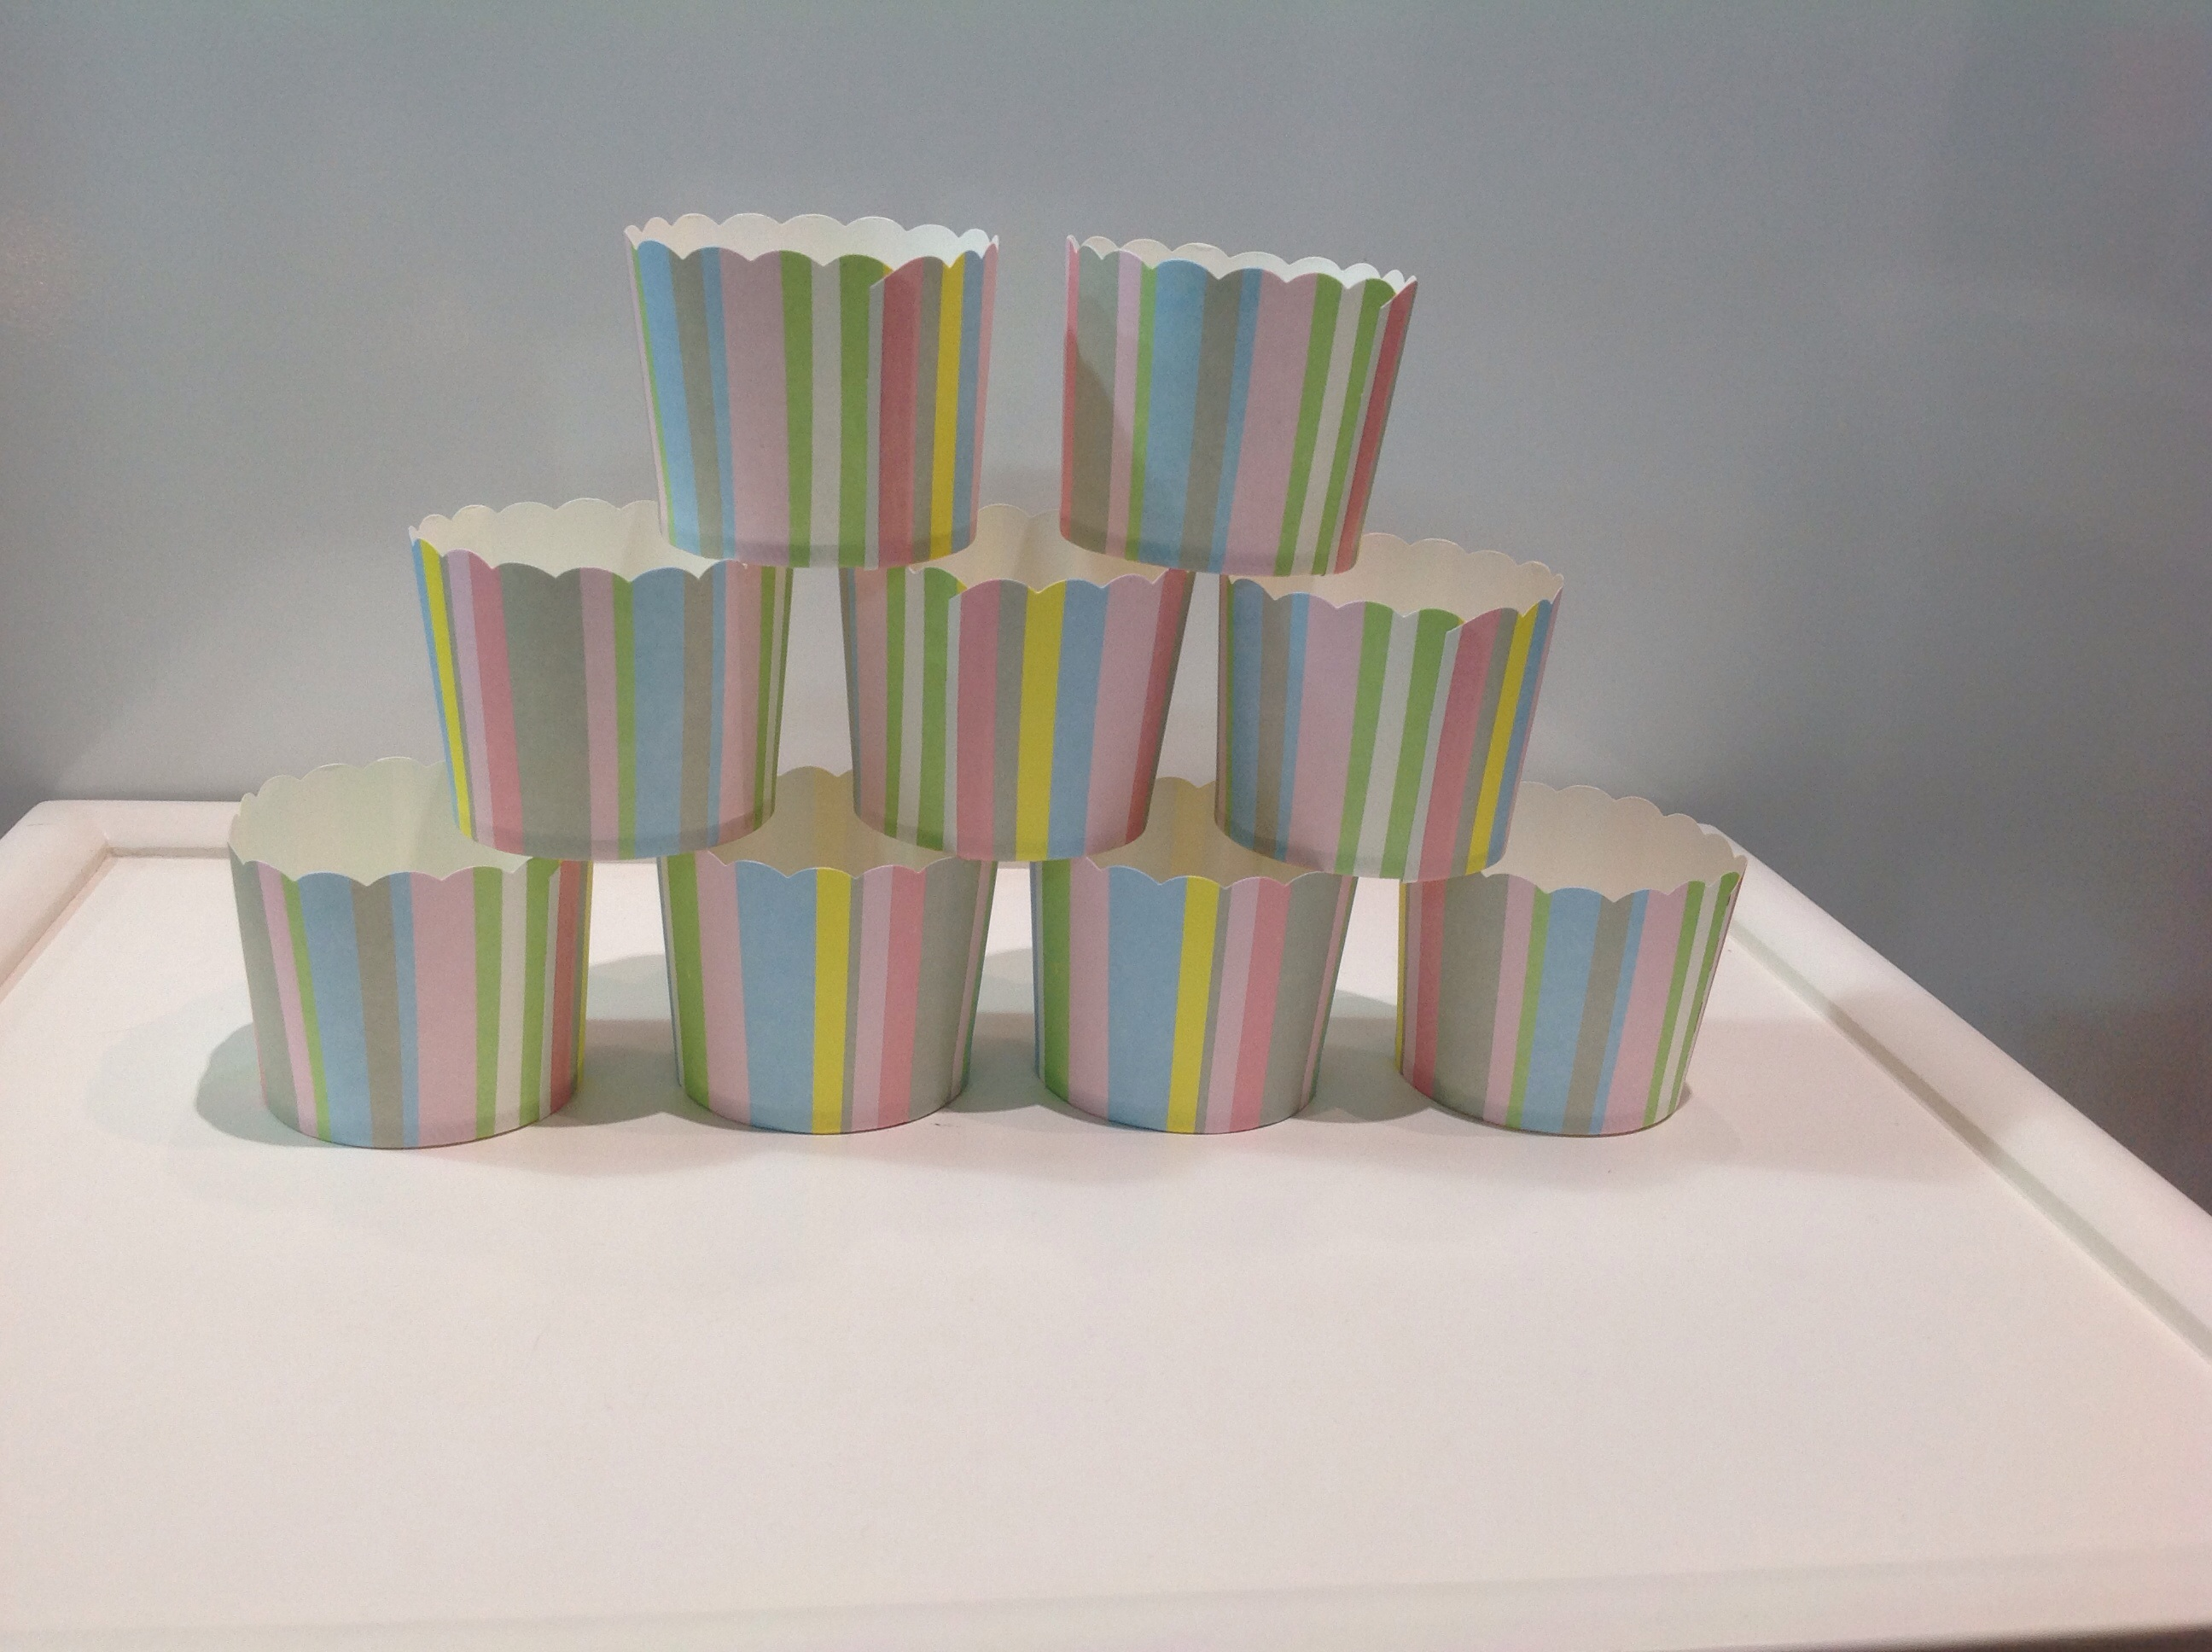 PC-EI-M60/55 STRIPE/B Muffin cup Stripe/Mix ลายทาง